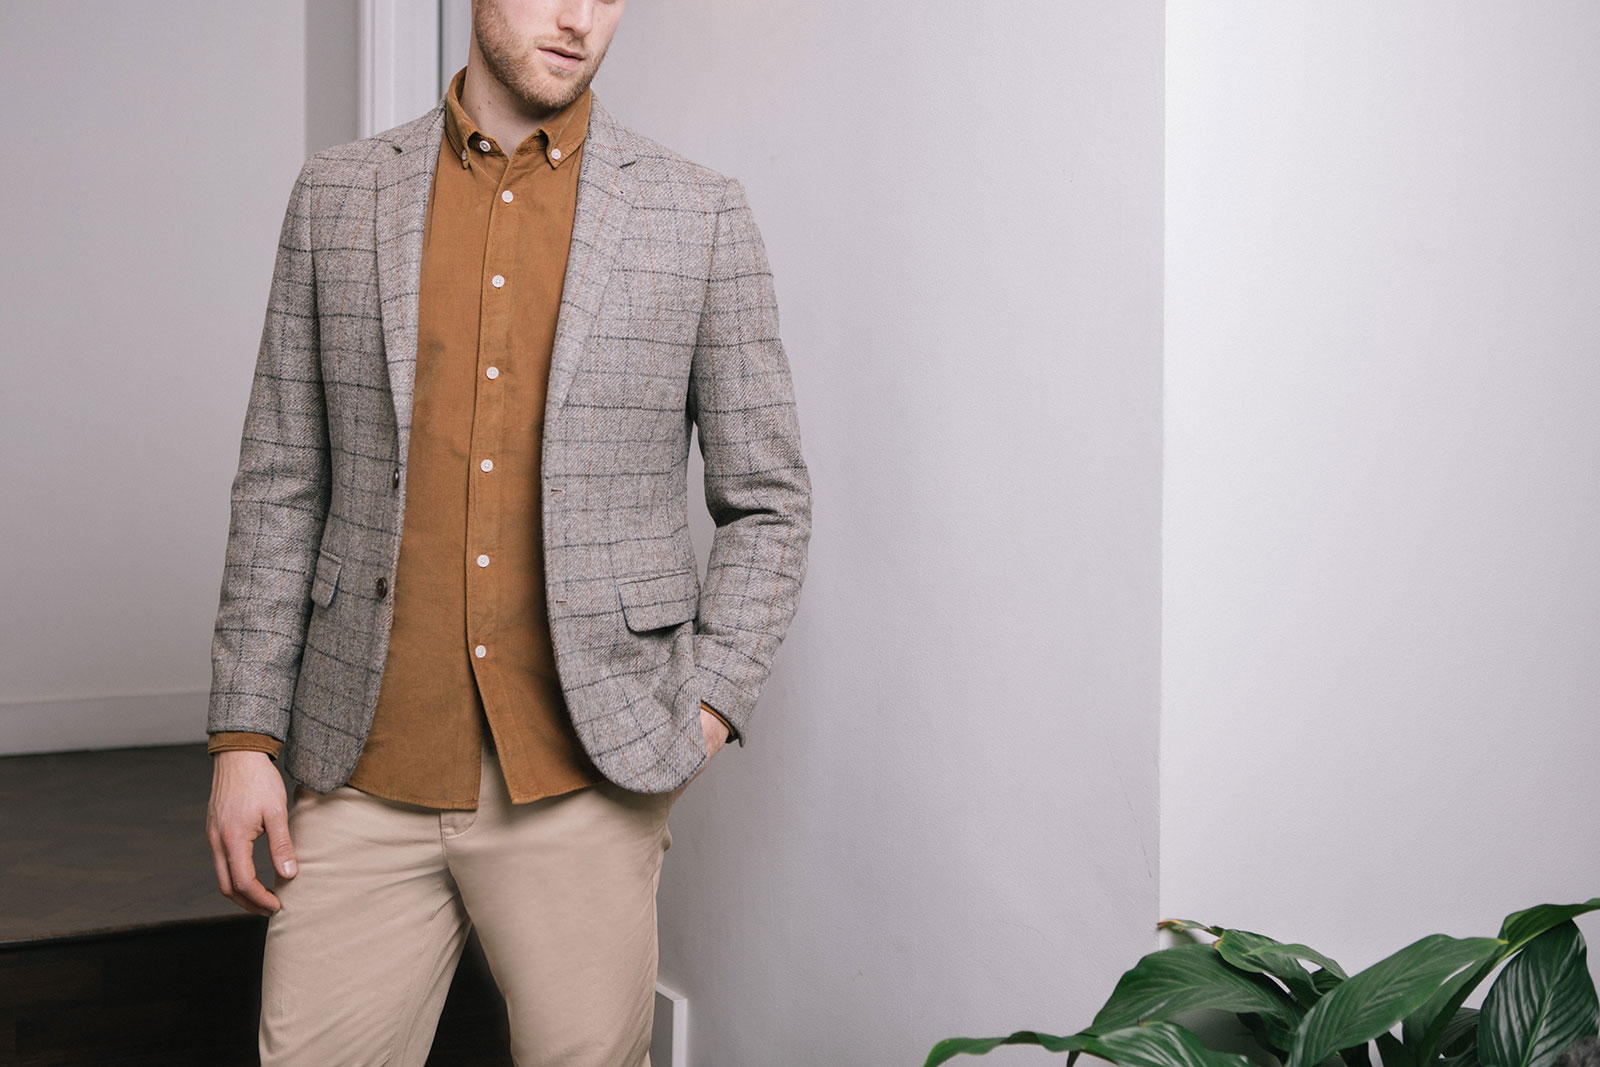 Patterned blazer and cord shirt